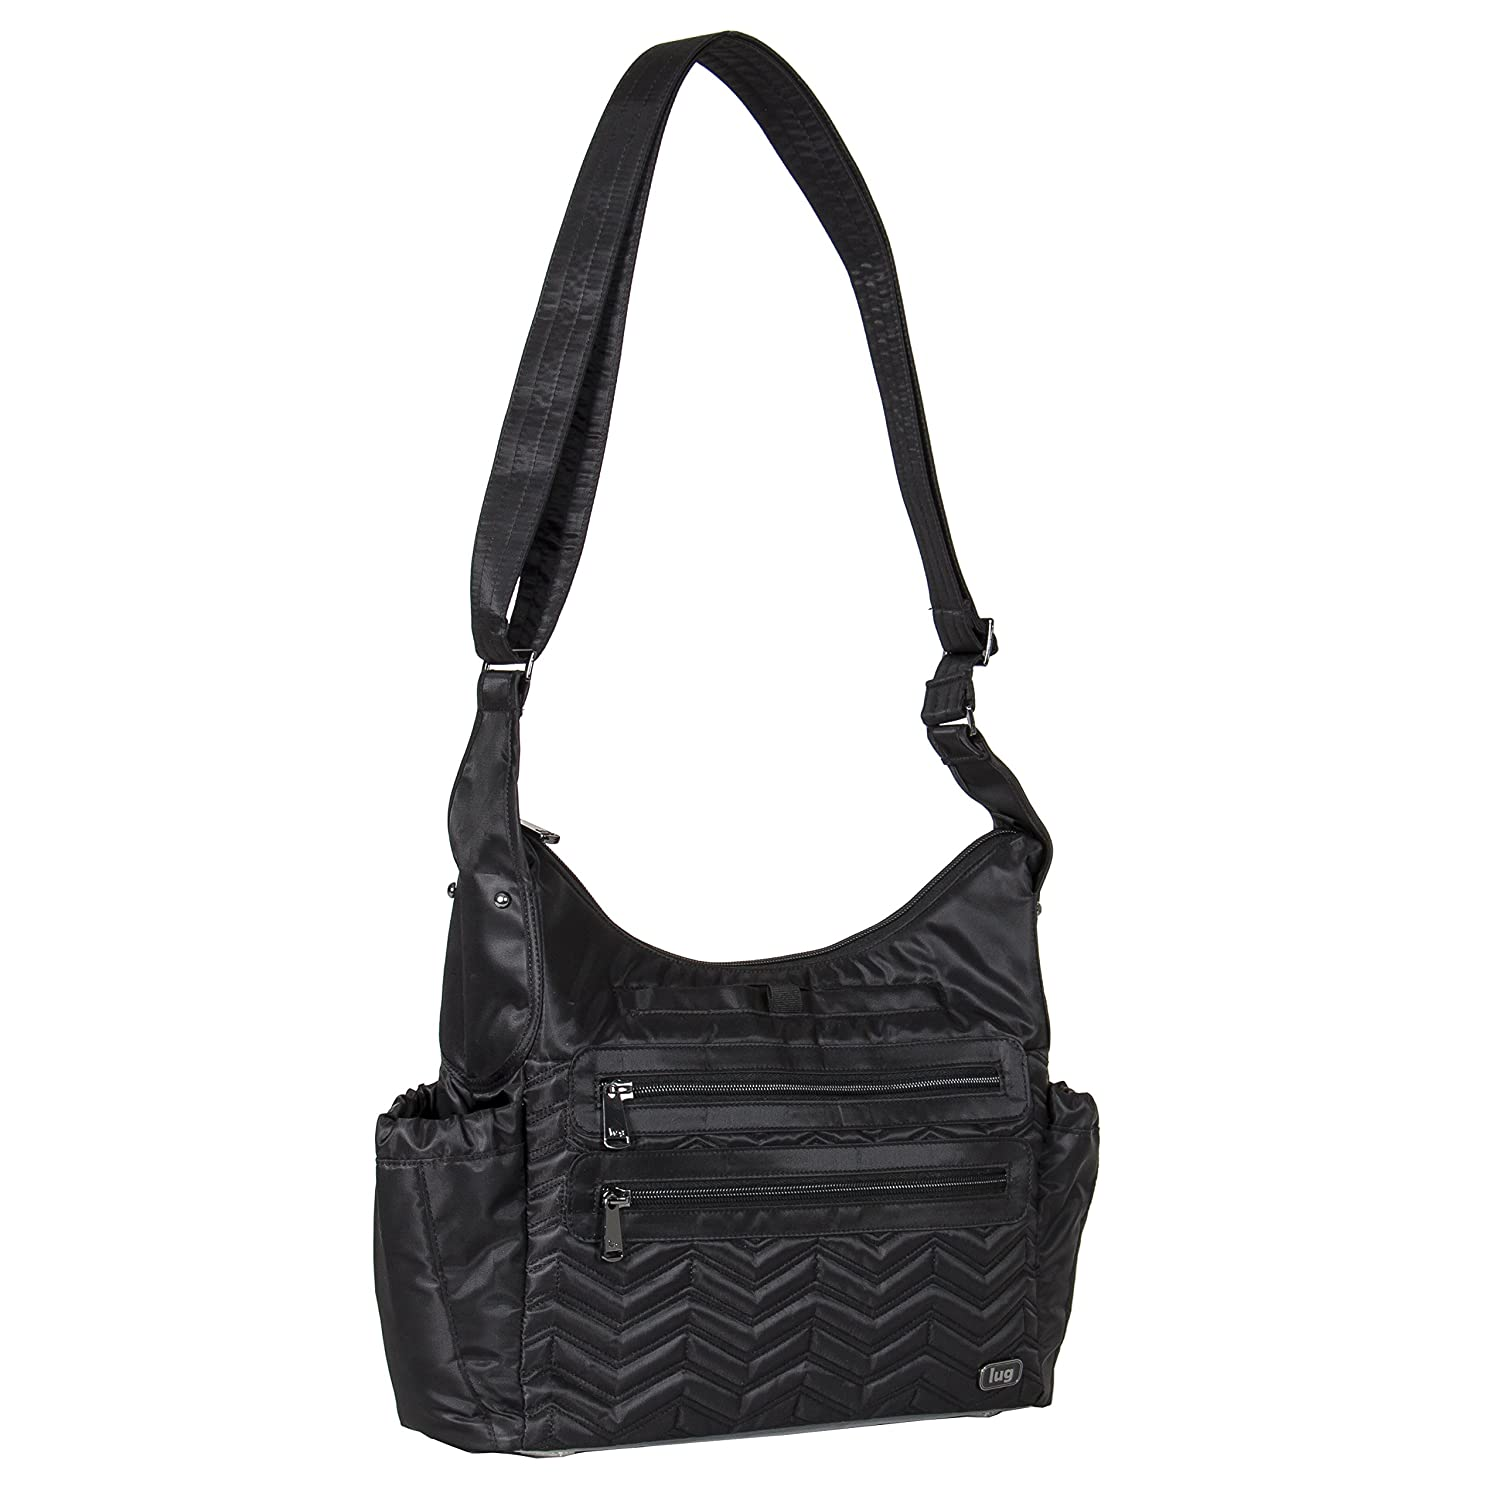 Lug Women's Camper Cross Body Shoulder Bag, Midnight Black, One Size LUGCA V-CAMPER-MIDNIGHT BLACK